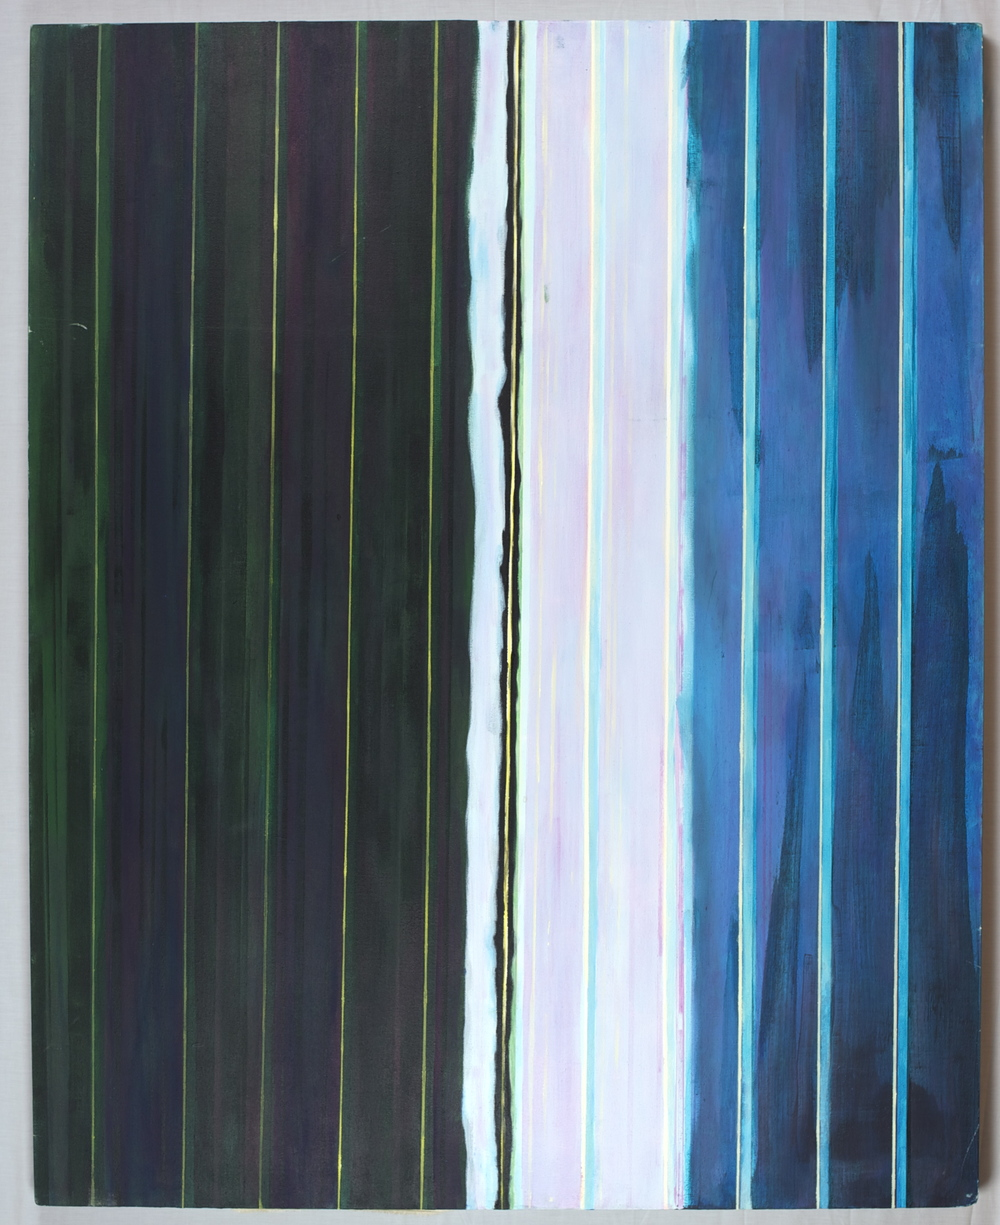 Untitled no6 (Zip) , 48x60, acrylic/oil on canvas, 2011